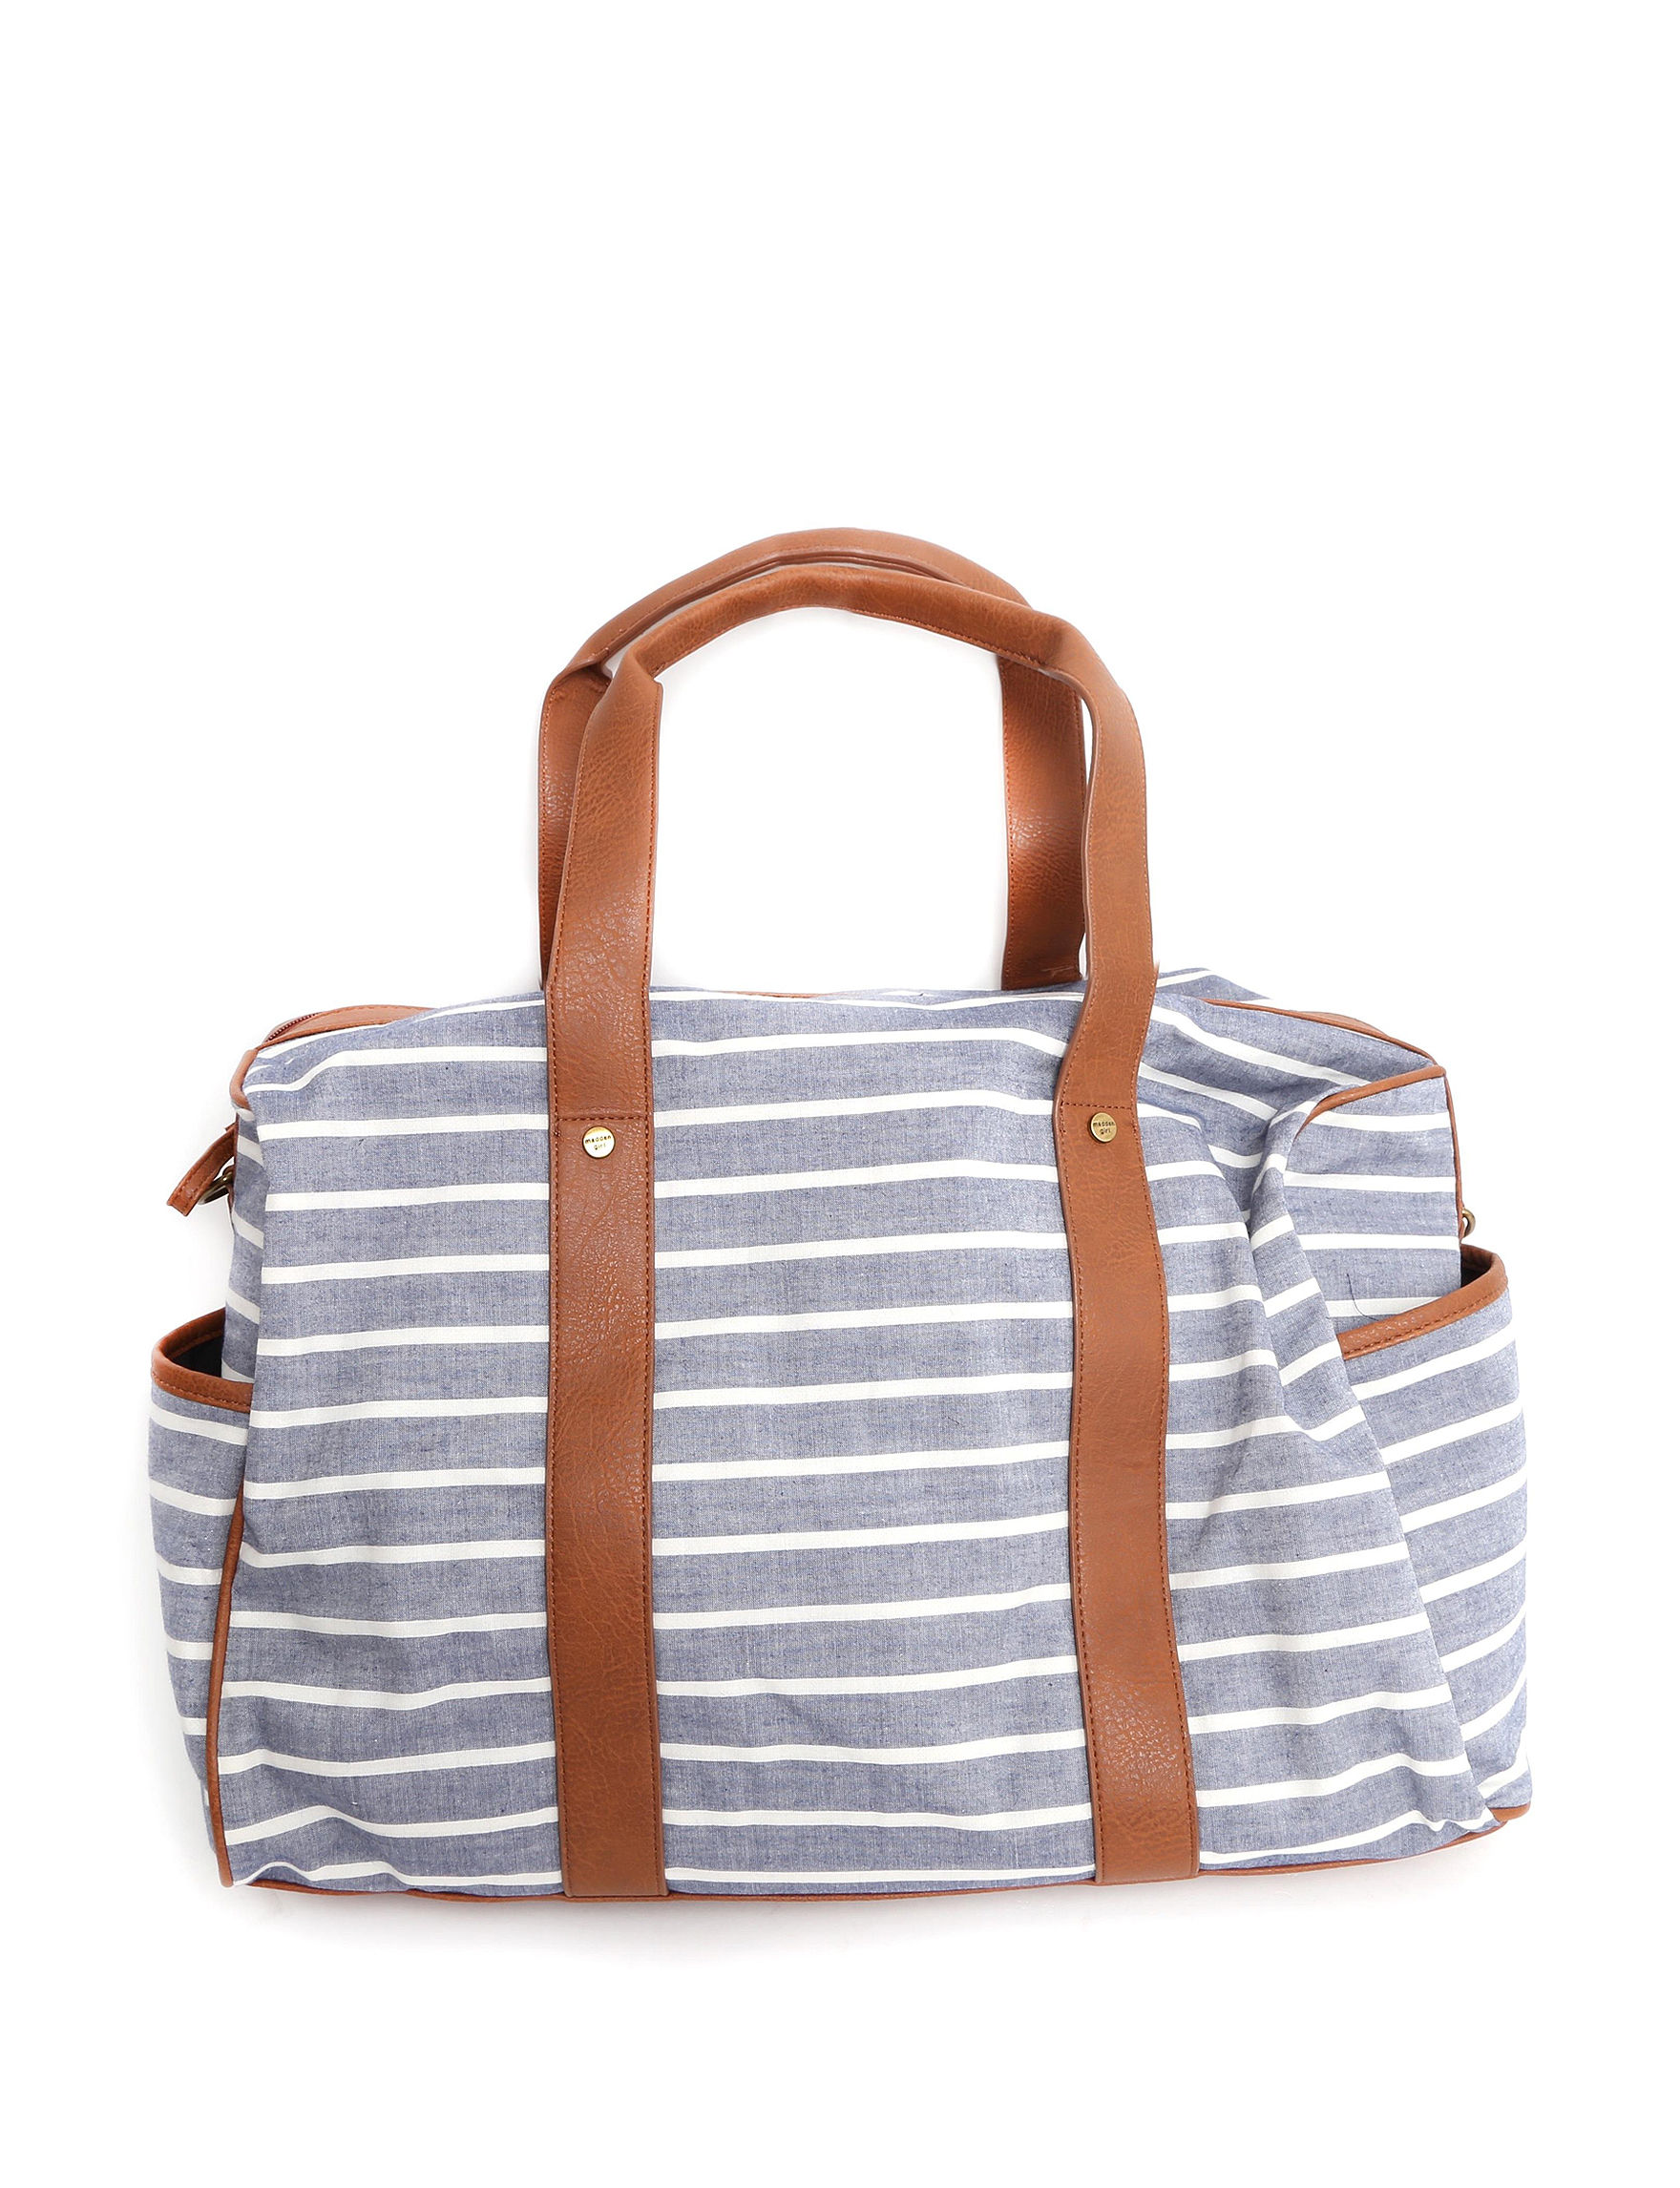 Madden Girl Chambray Weekend Bags